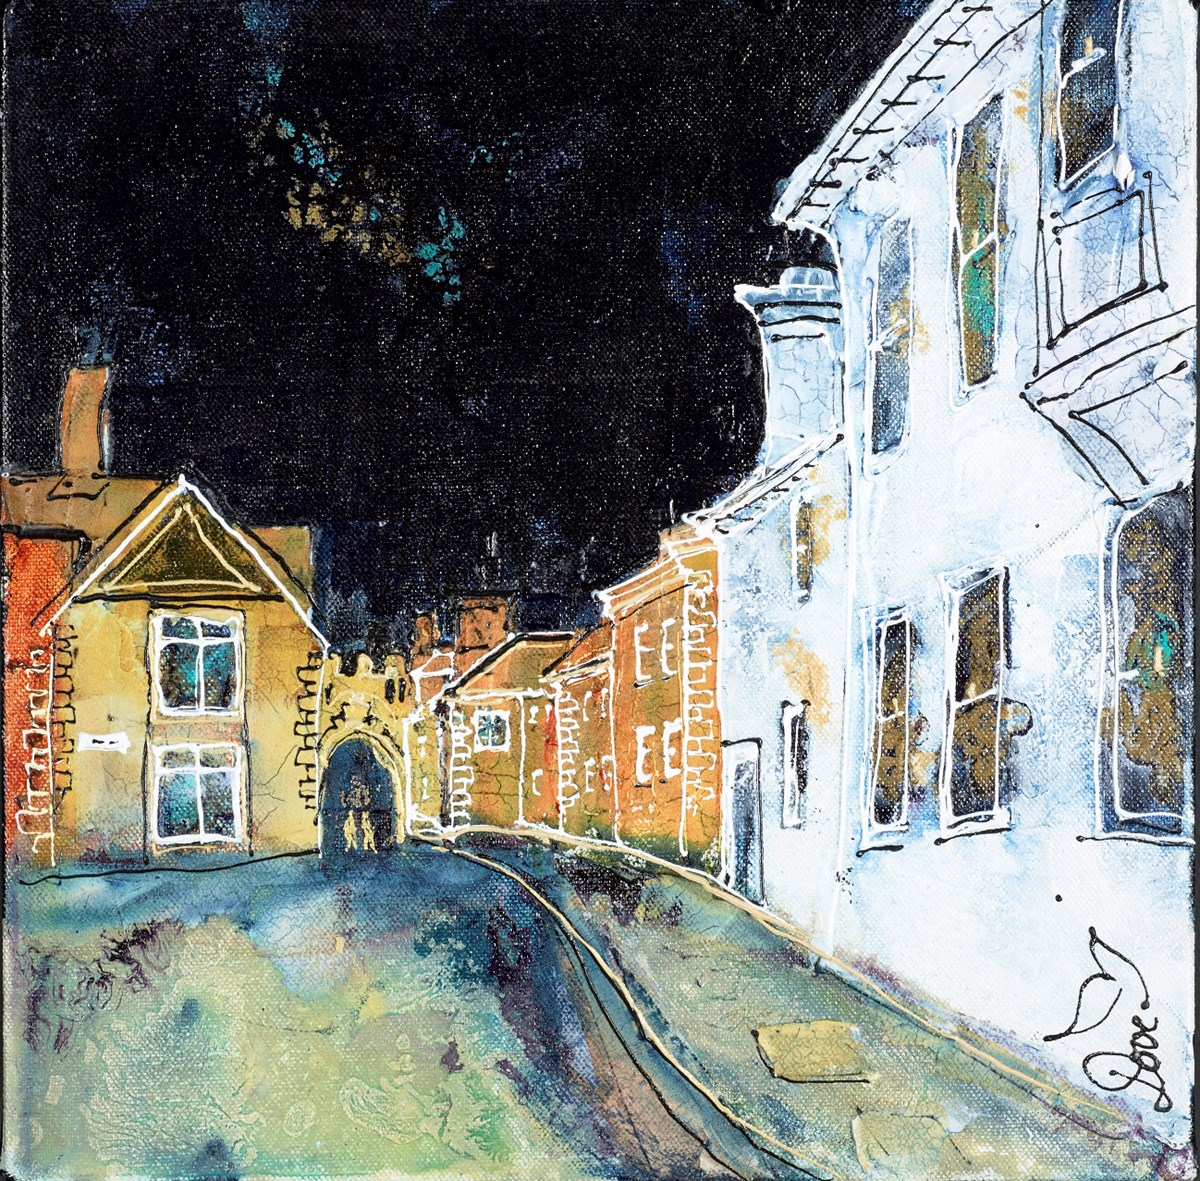 Back Streets, Salisbury by katharine dove -  sized 12x12 inches. Available from Whitewall Galleries